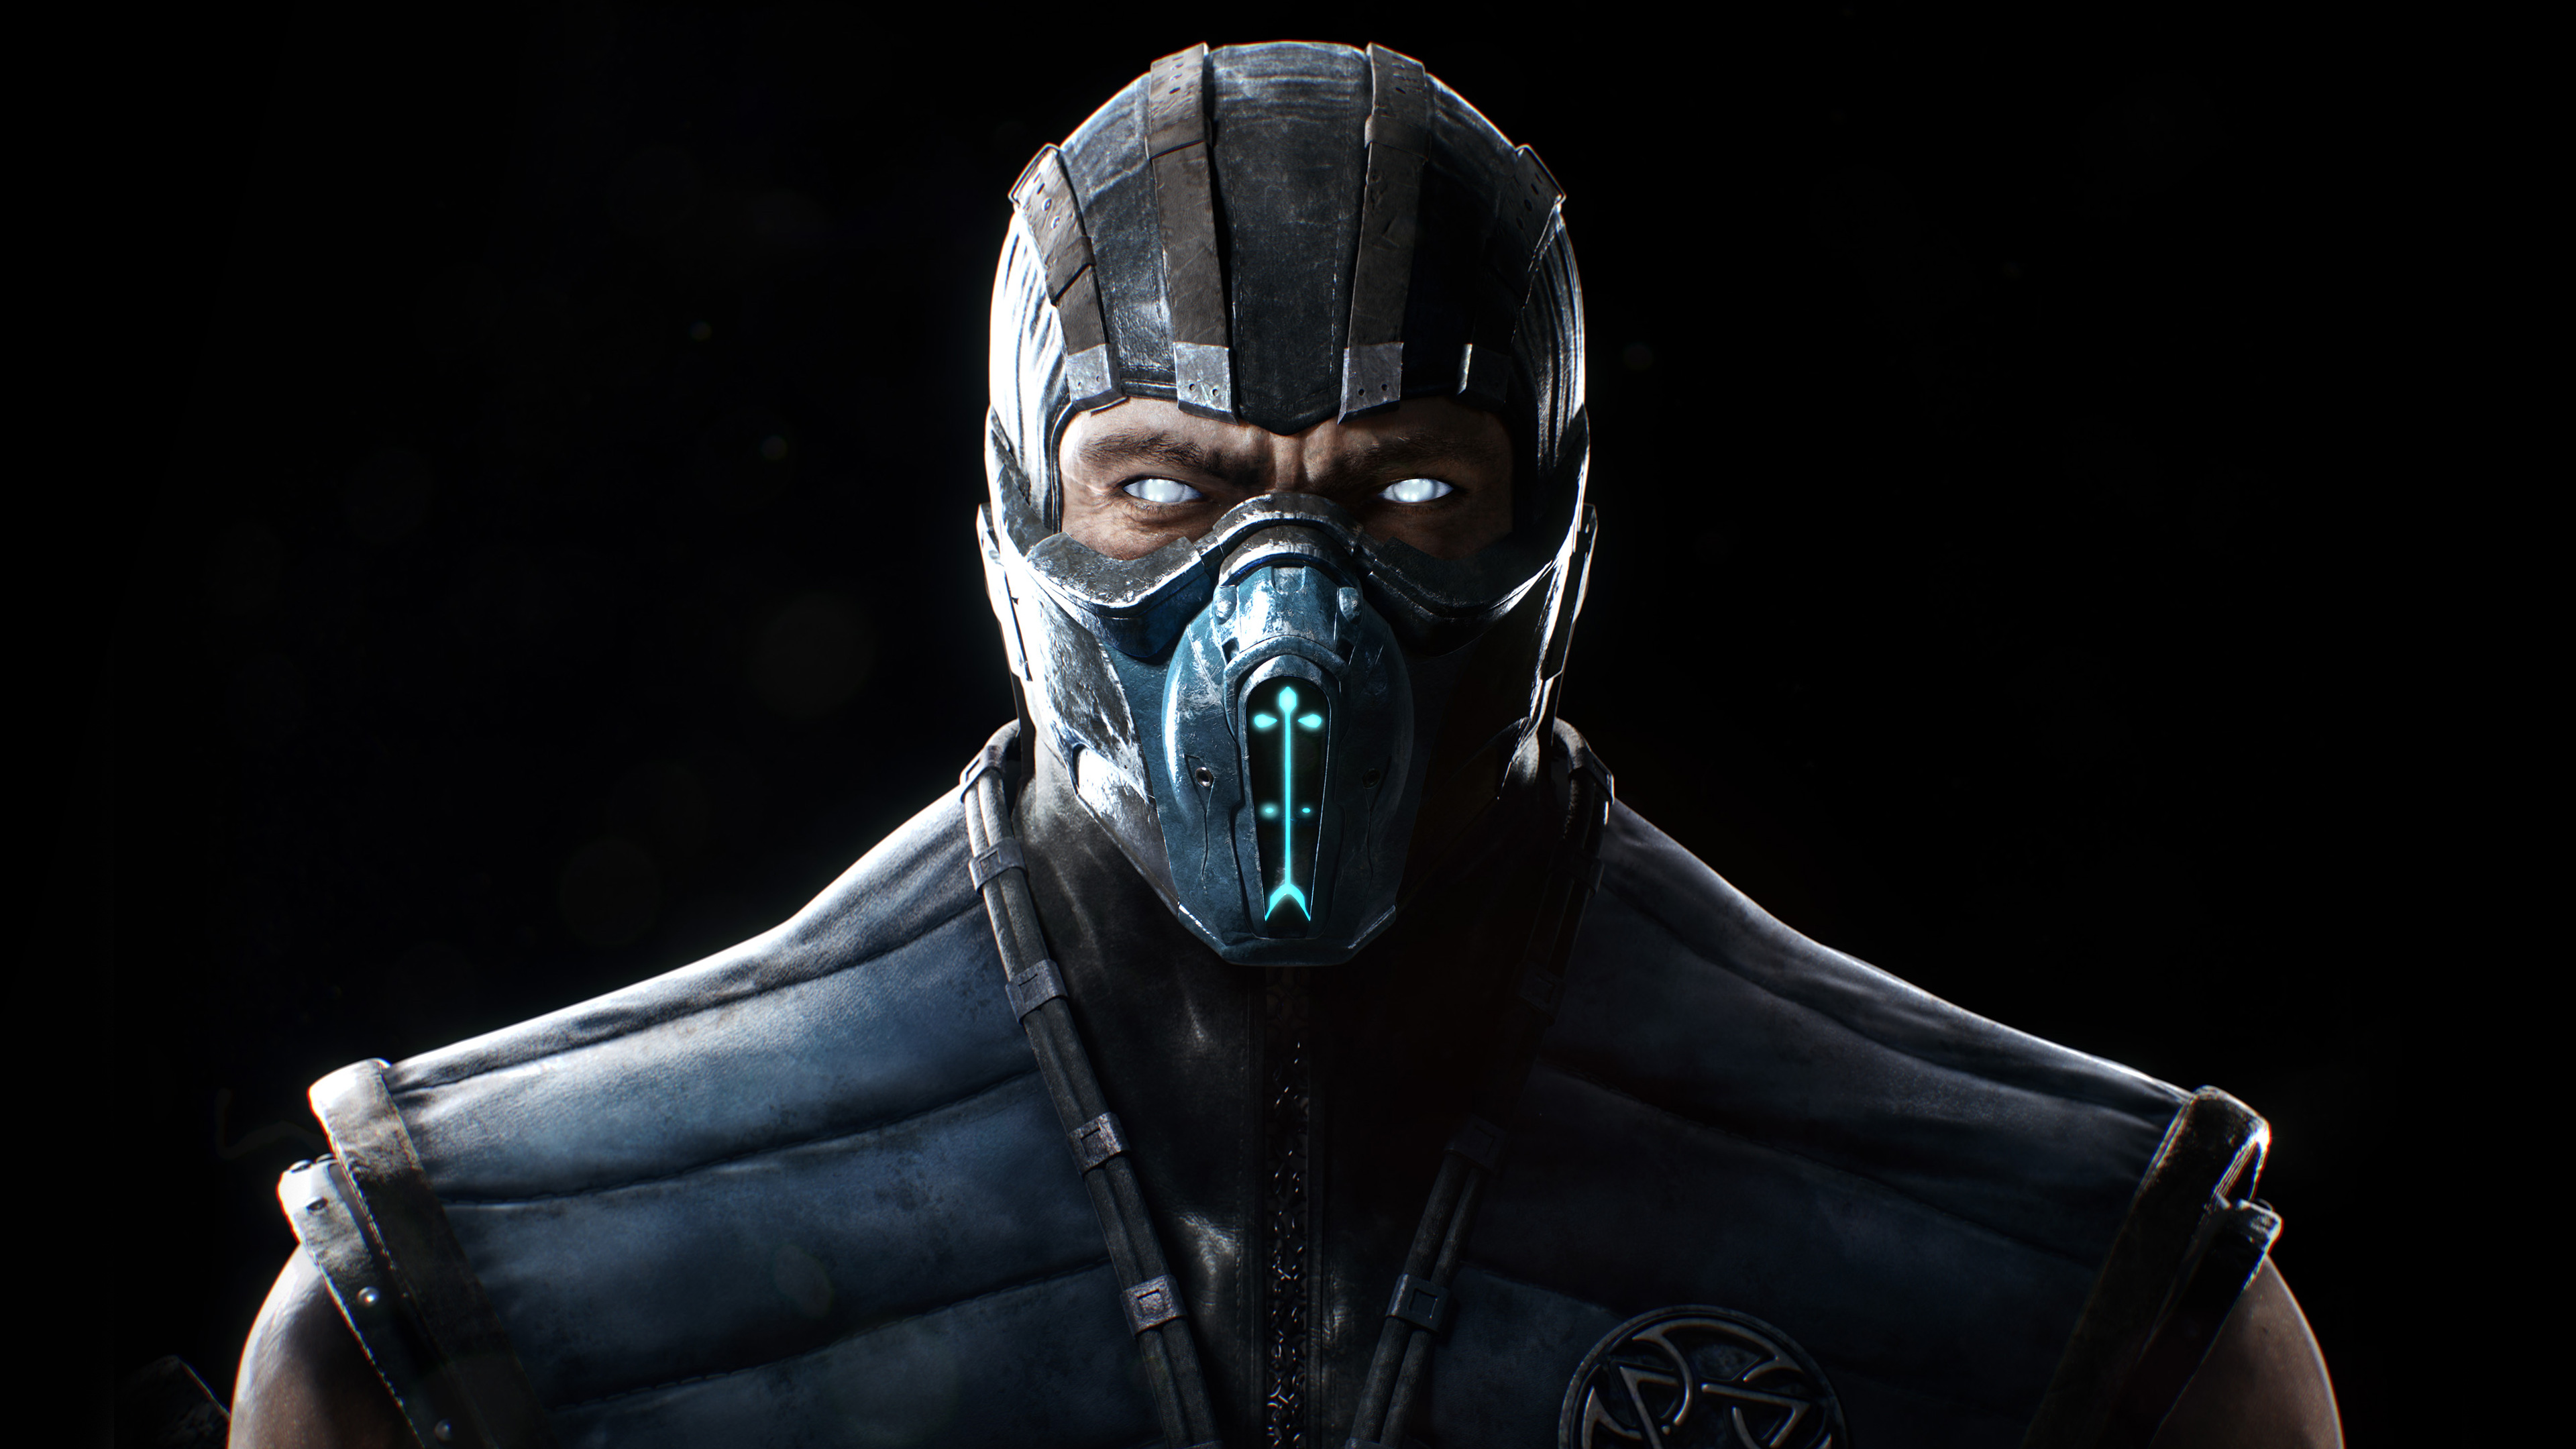 Mortal Kombat X Sub Zero Wallpapers HD Wallpapers 3840x2160